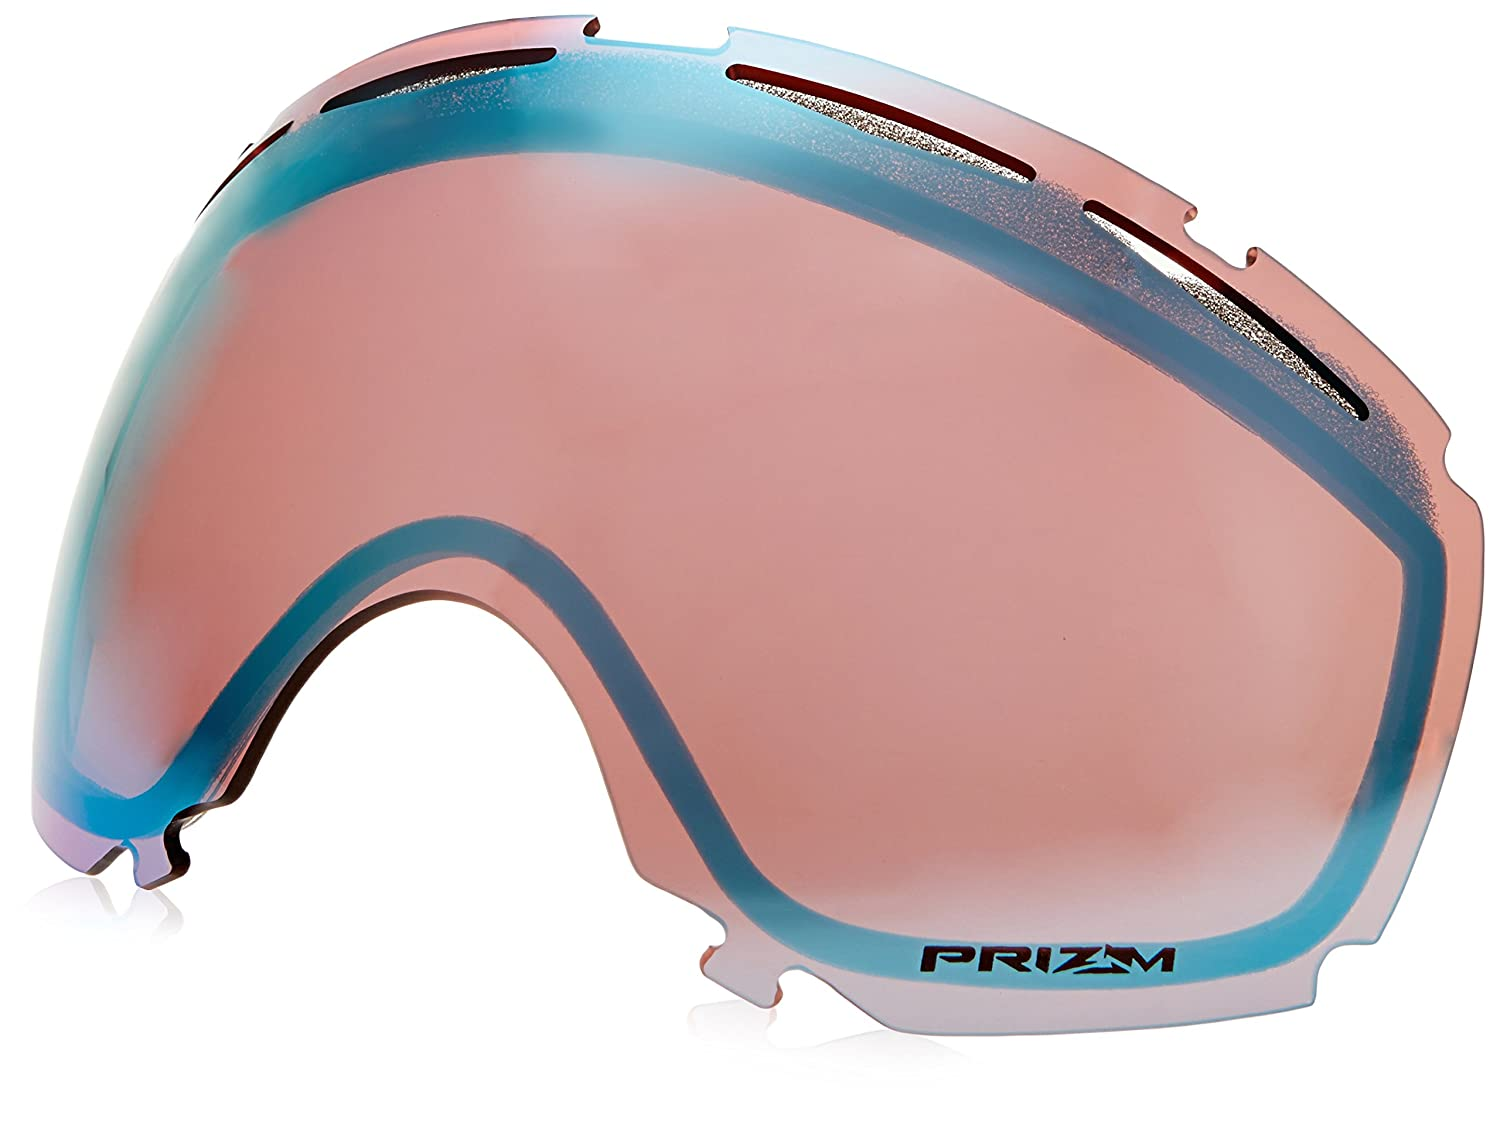 c7908d3a490 Amazon.com  Oakley Canopy Prizm Men s Replacement Lens Snow Goggles  Accessories - Black Iridium One Size  Sports   Outdoors